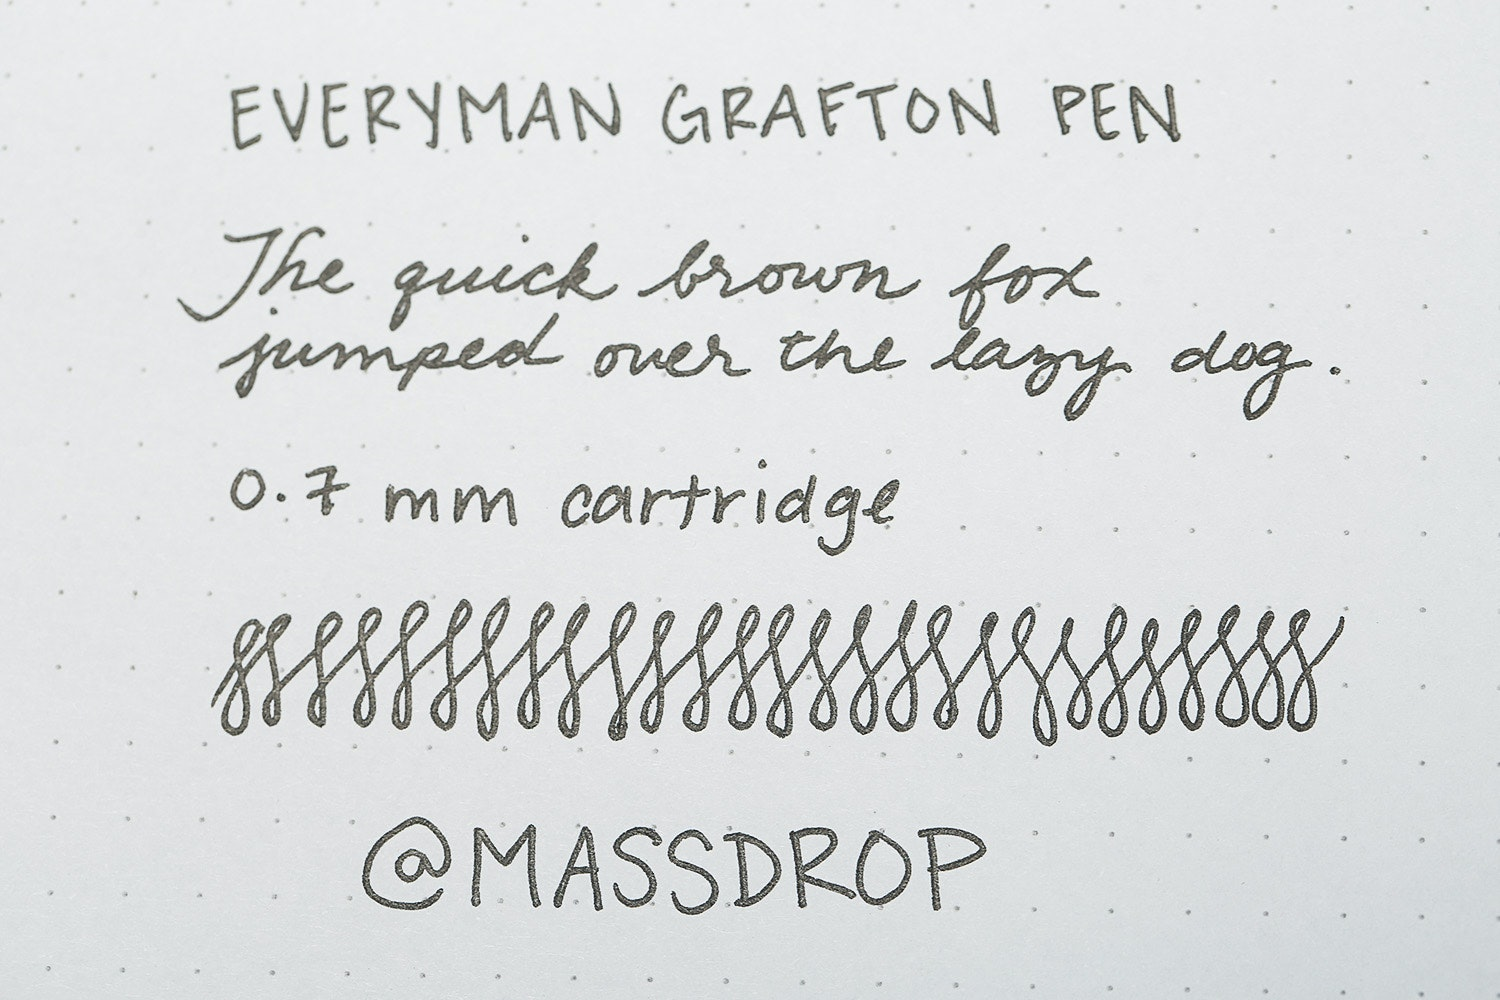 Everyman Grafton Pen